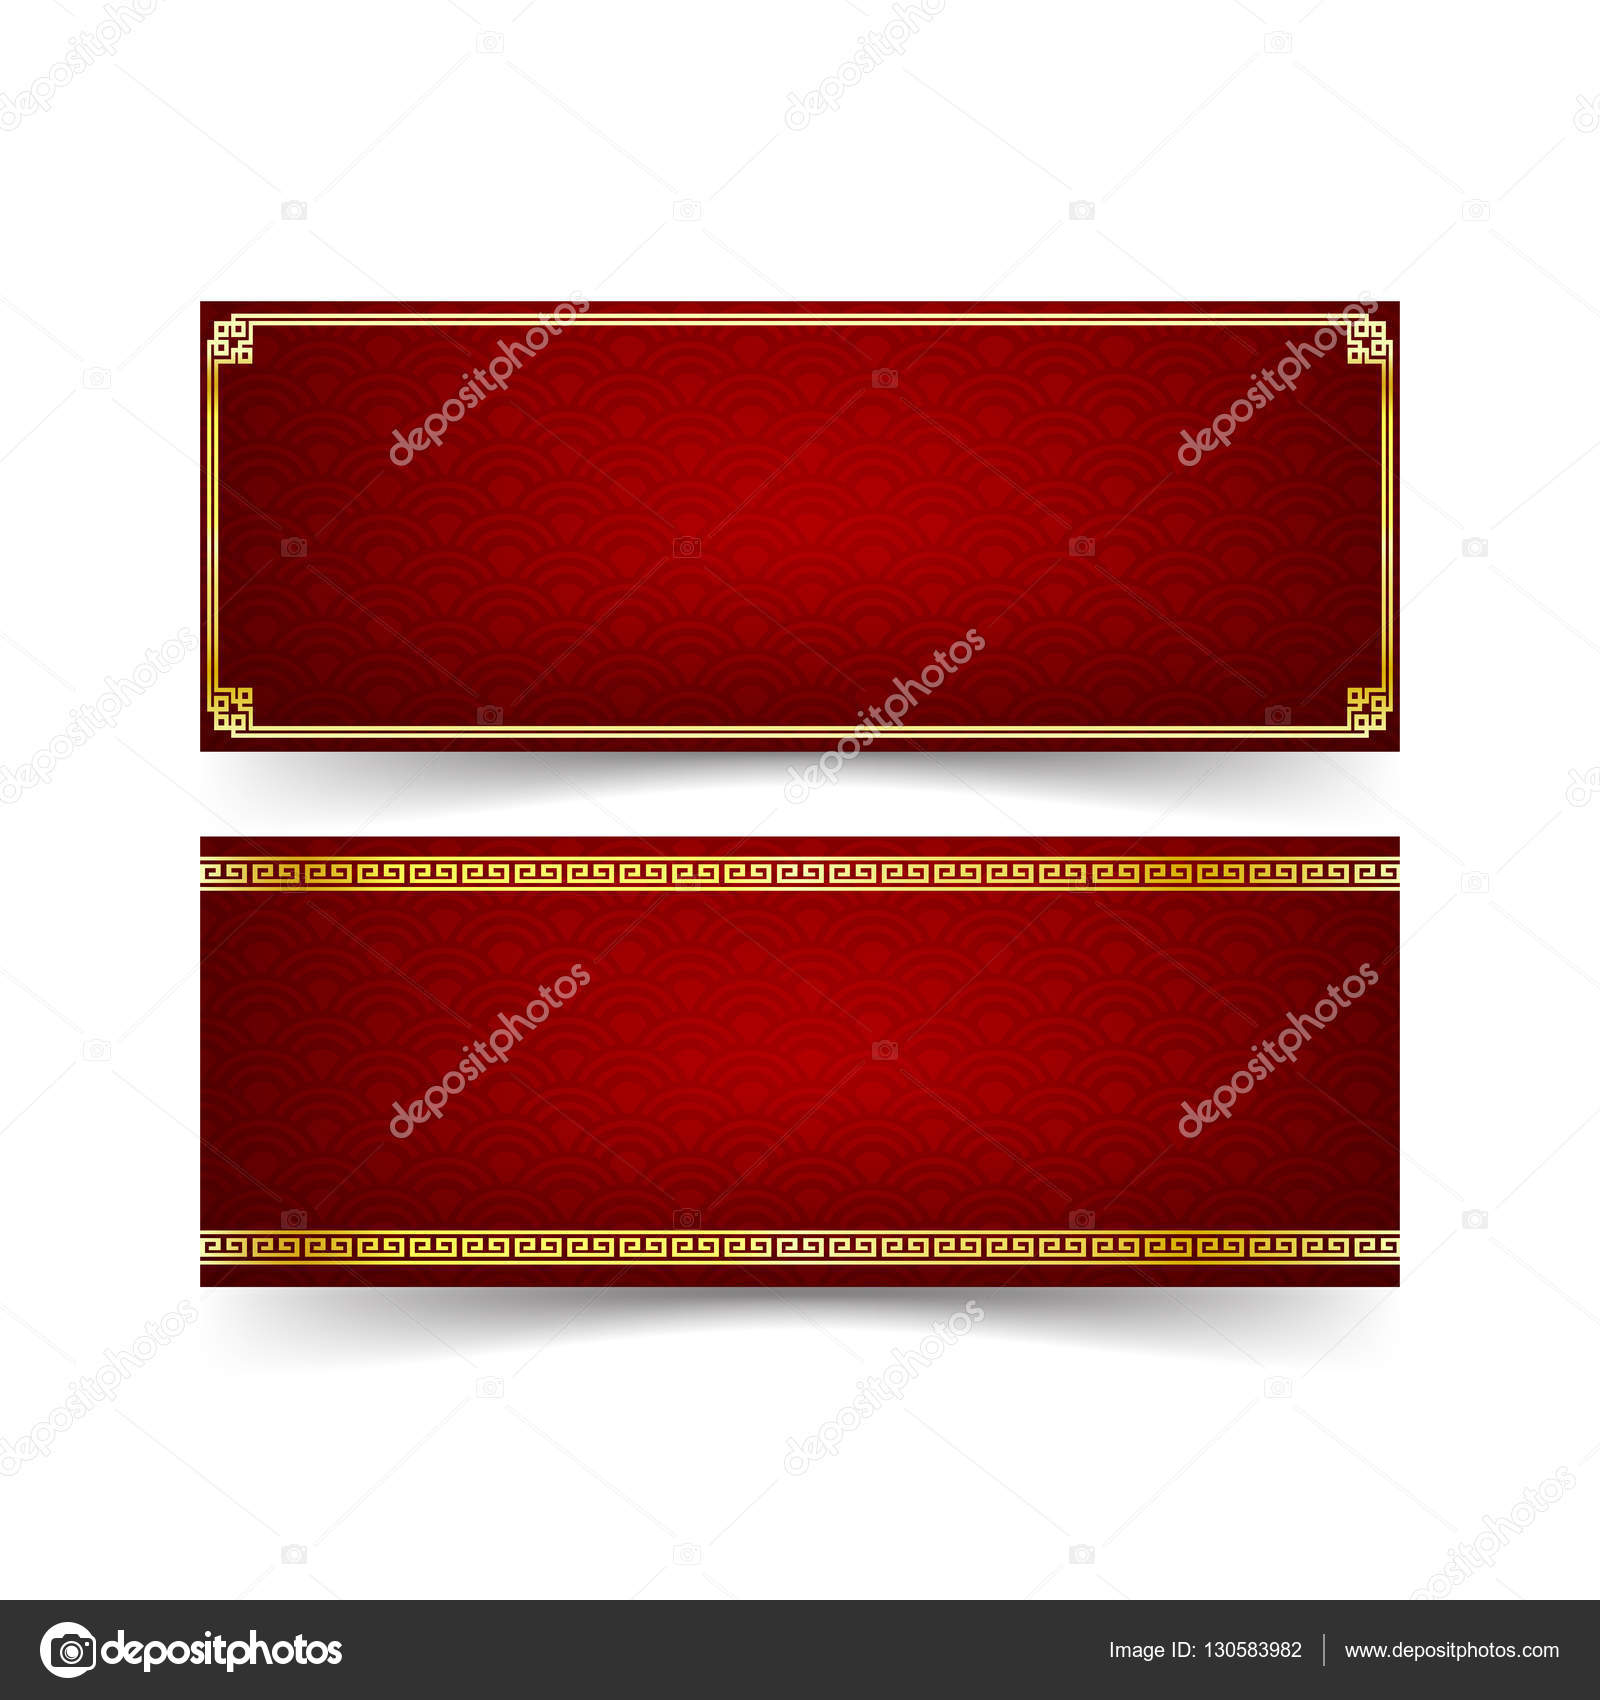 abstract chinese red banner background and gold border with modern art chinese style isolated on the white background vector illustration vector by